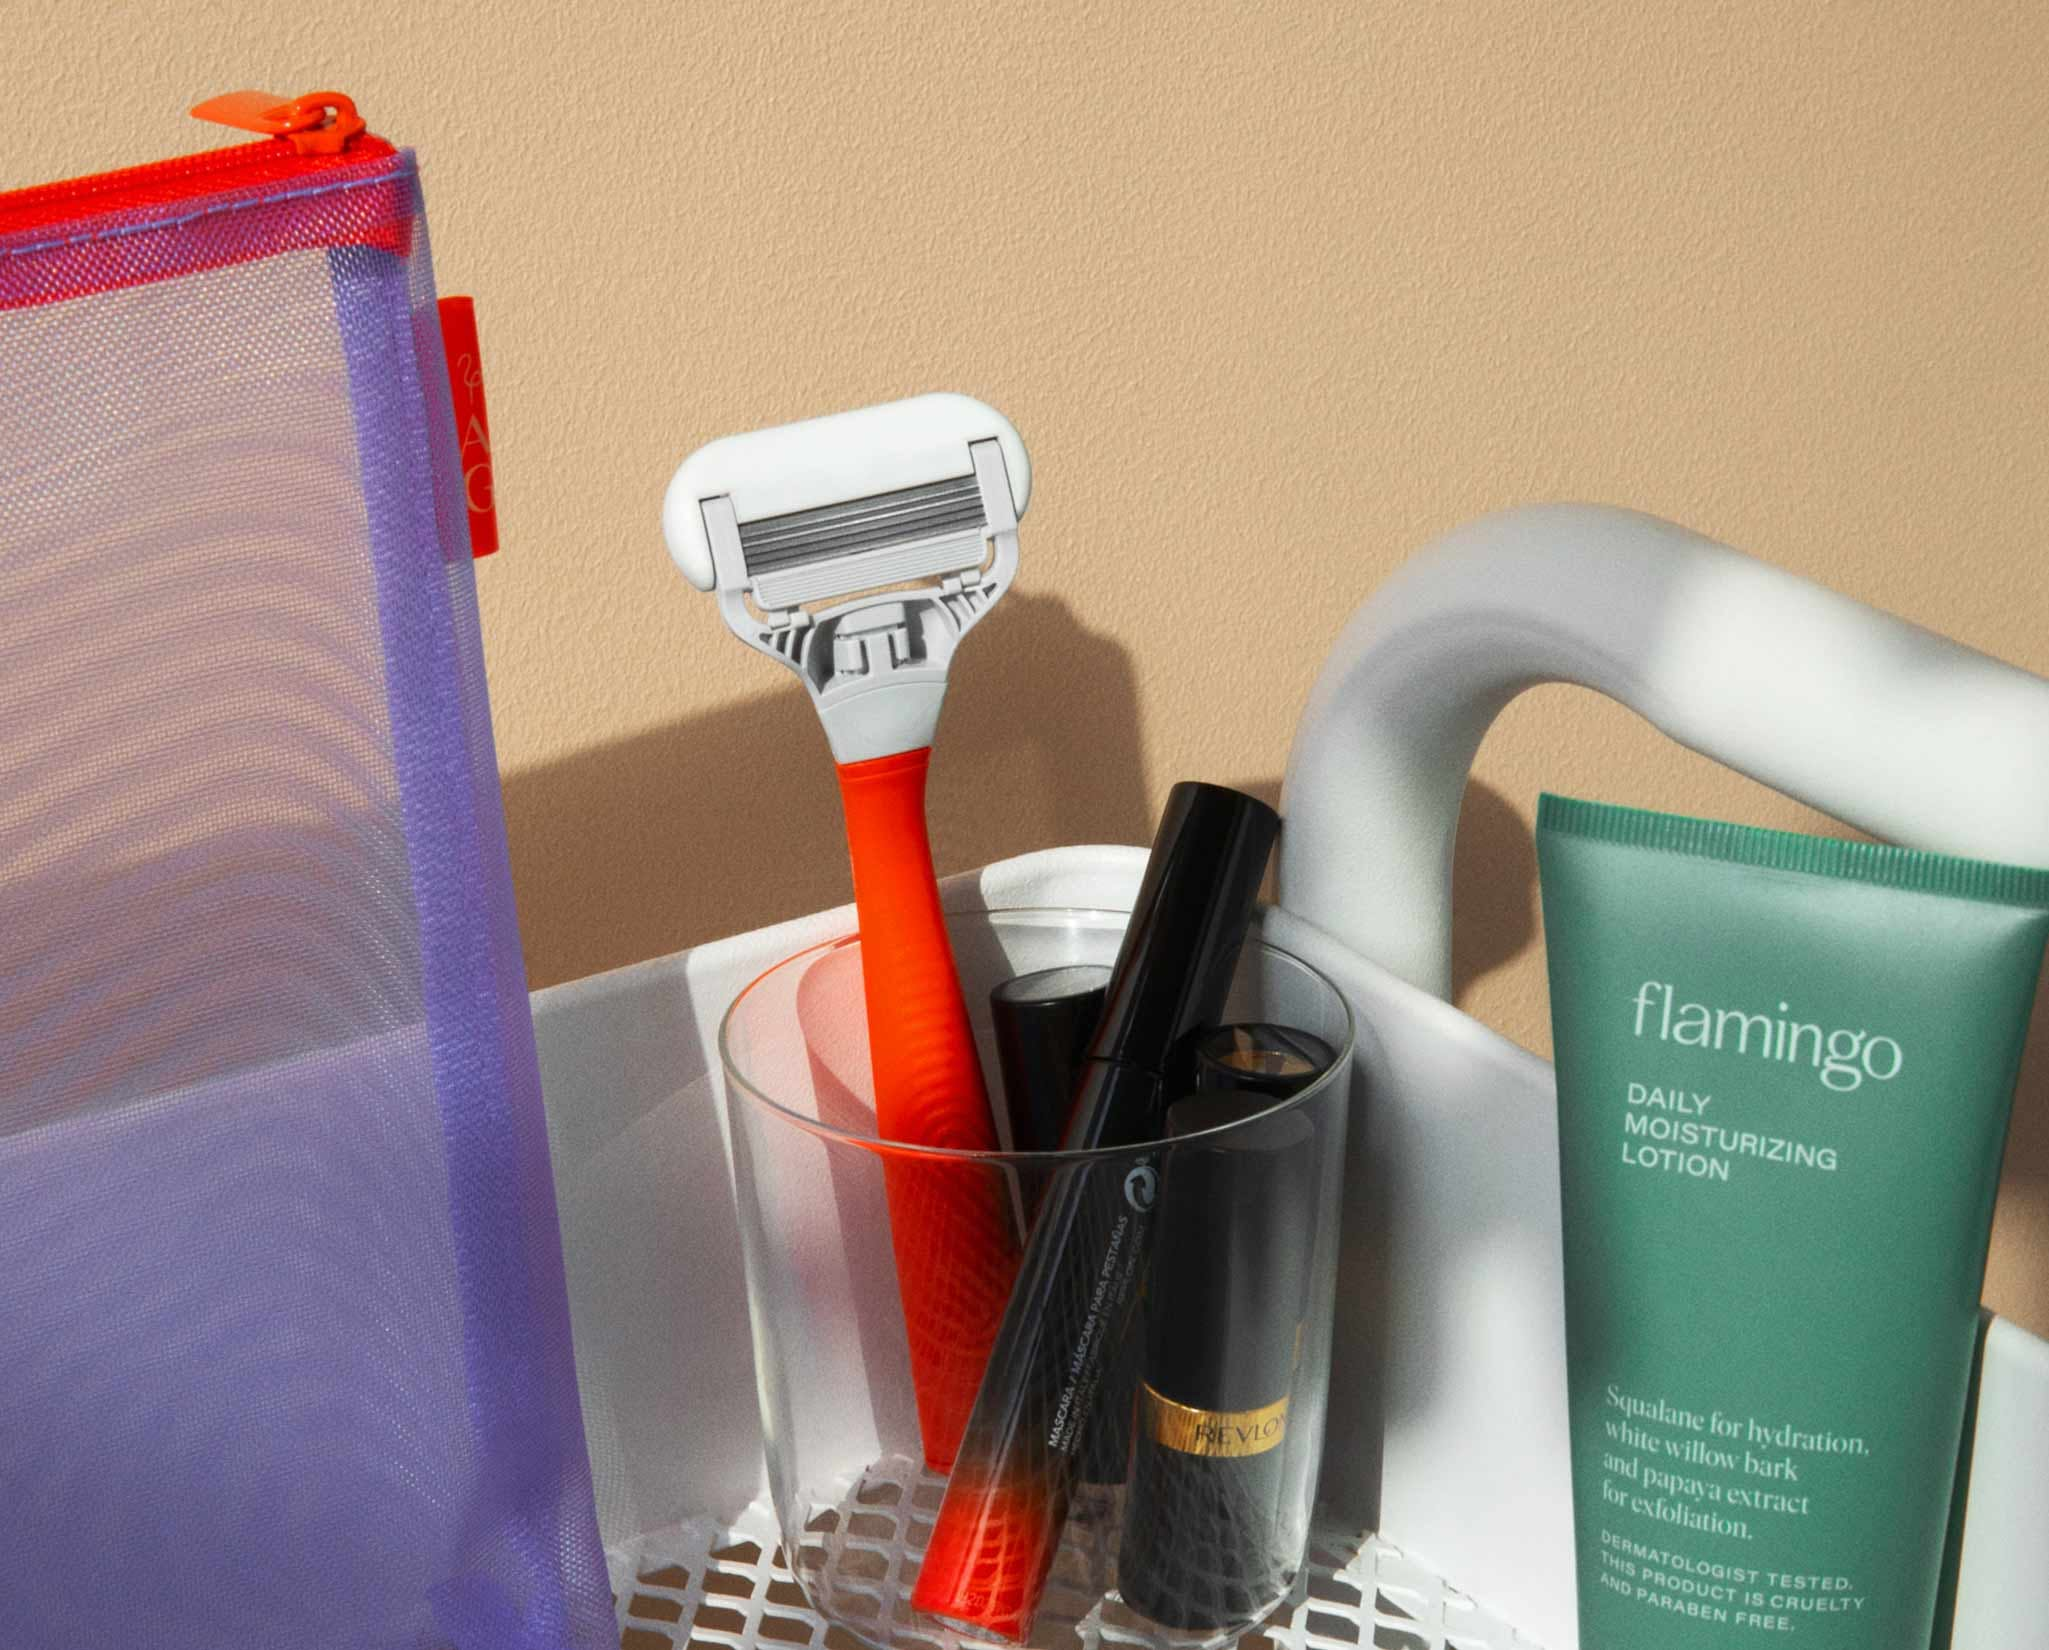 Razor in a bathroom surrounded by products